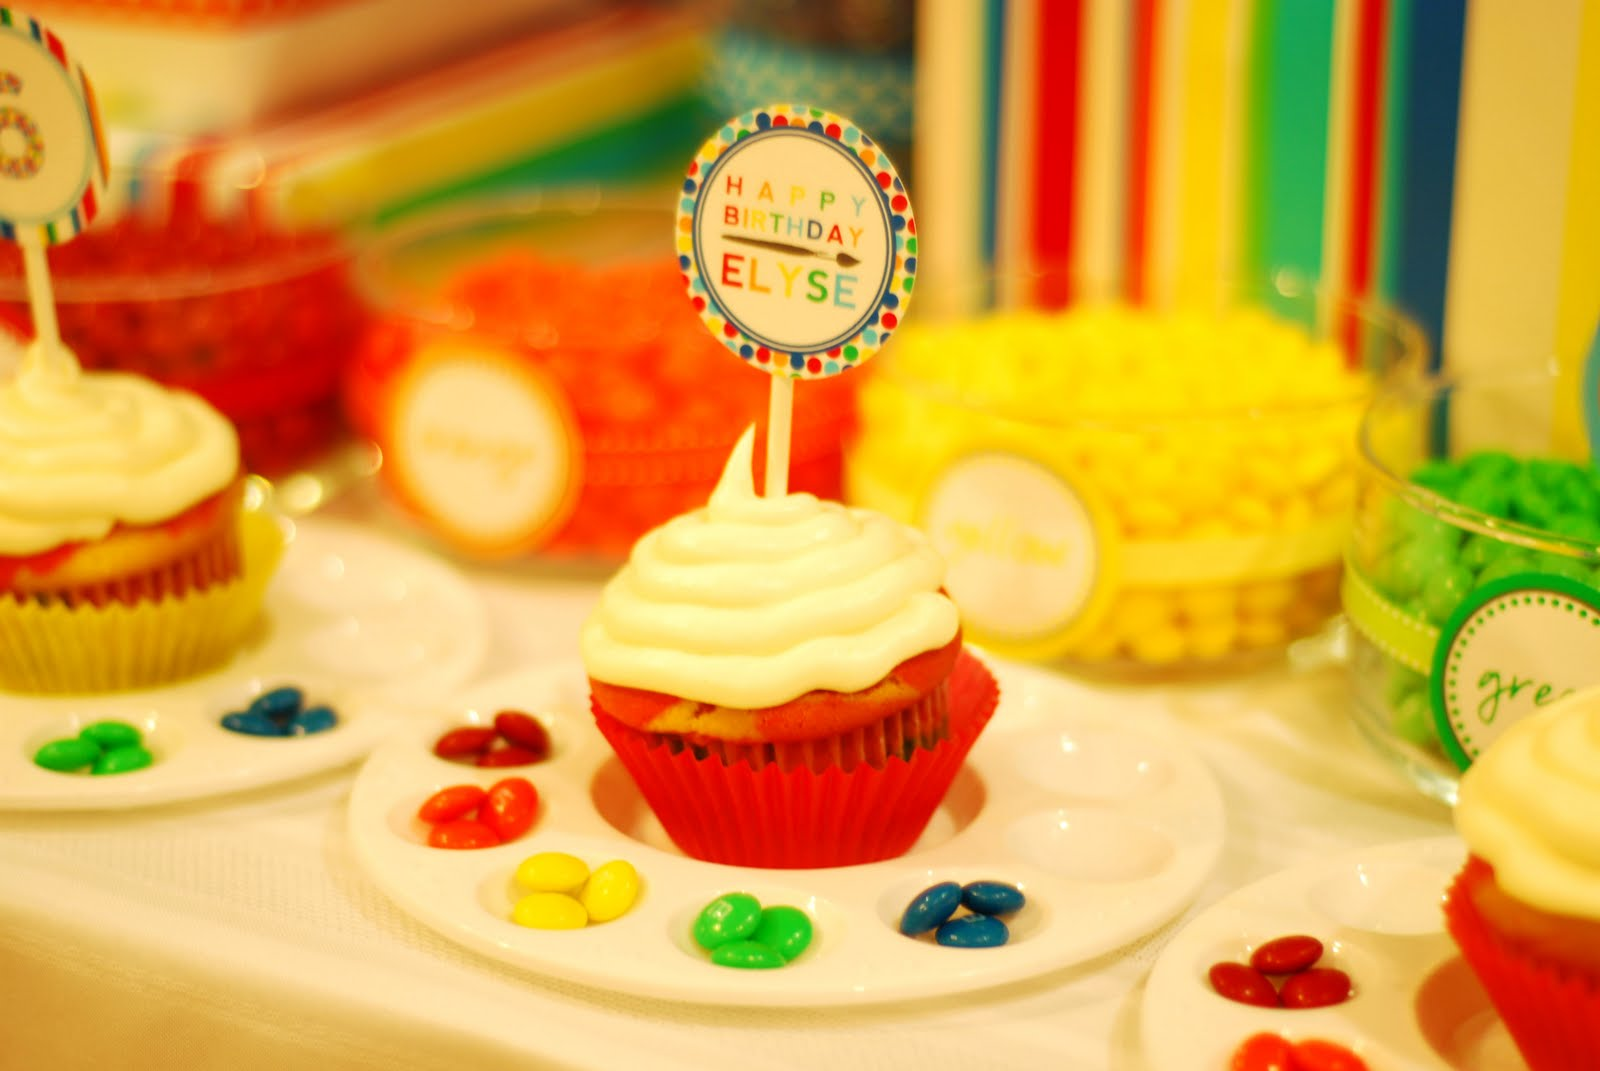 Arts and crafts party ideas - Arts And Crafts Party Ideas 44